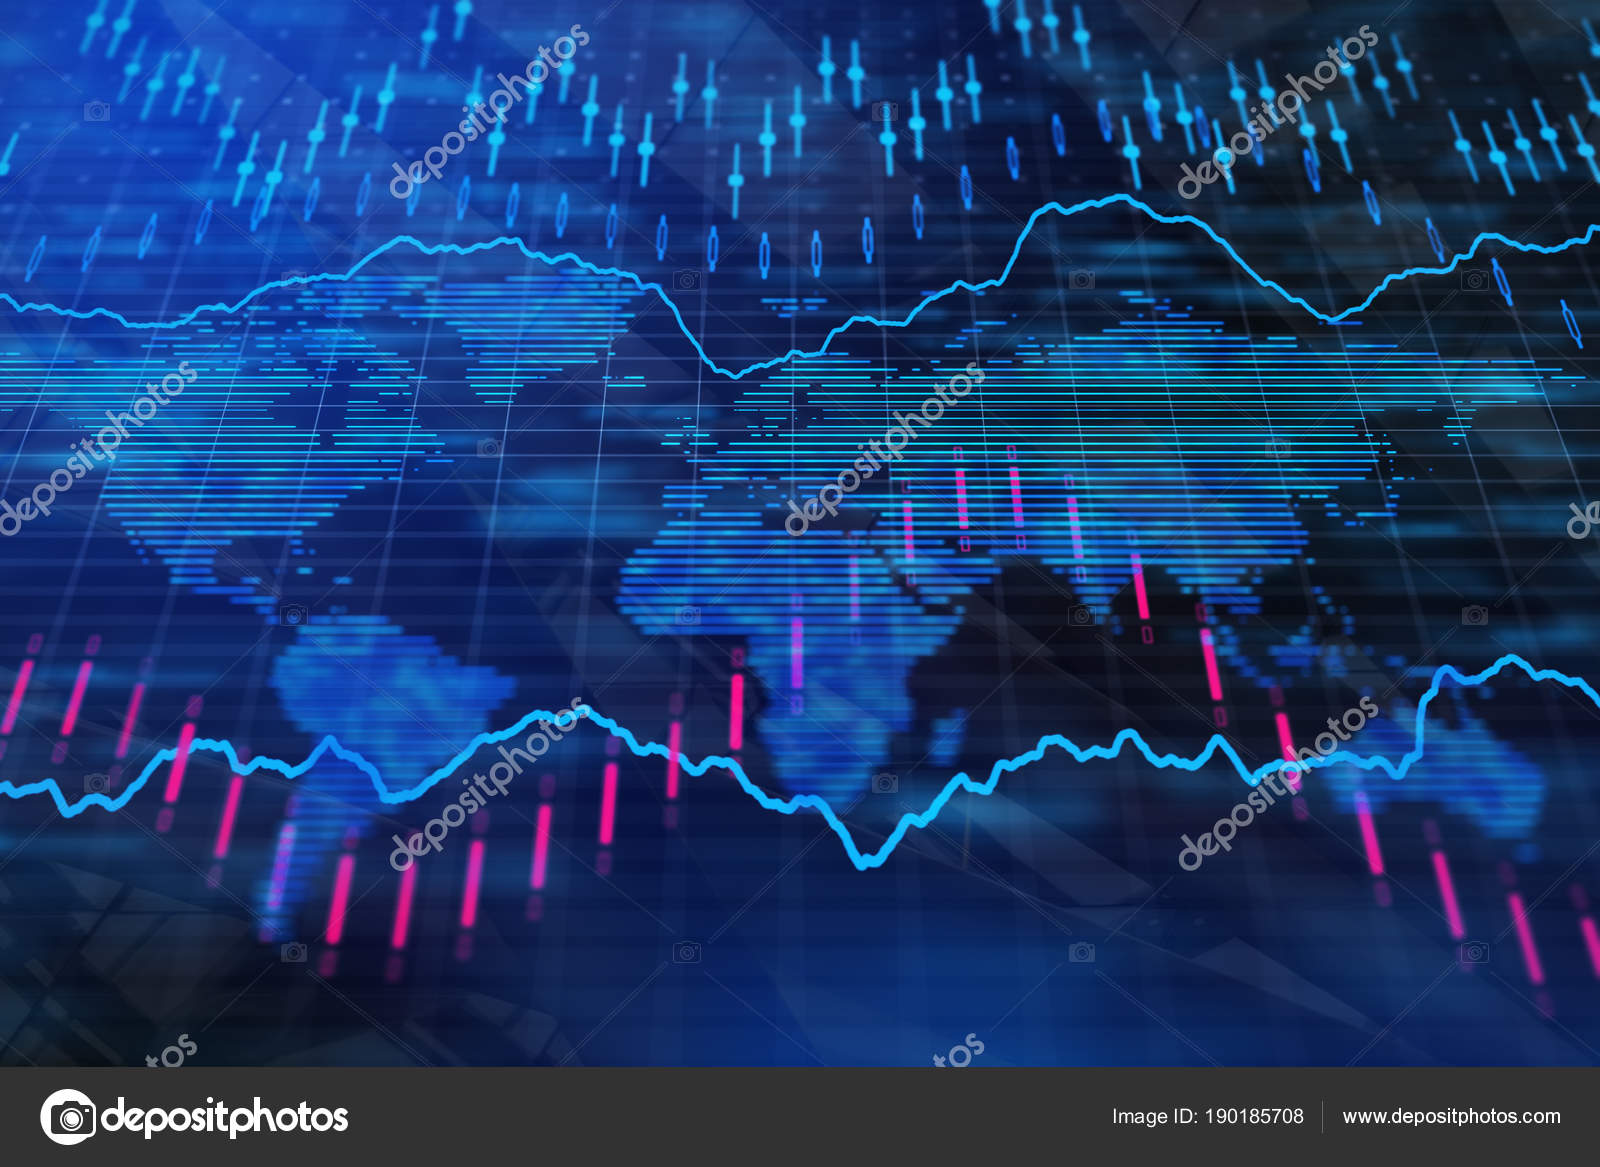 Forex images